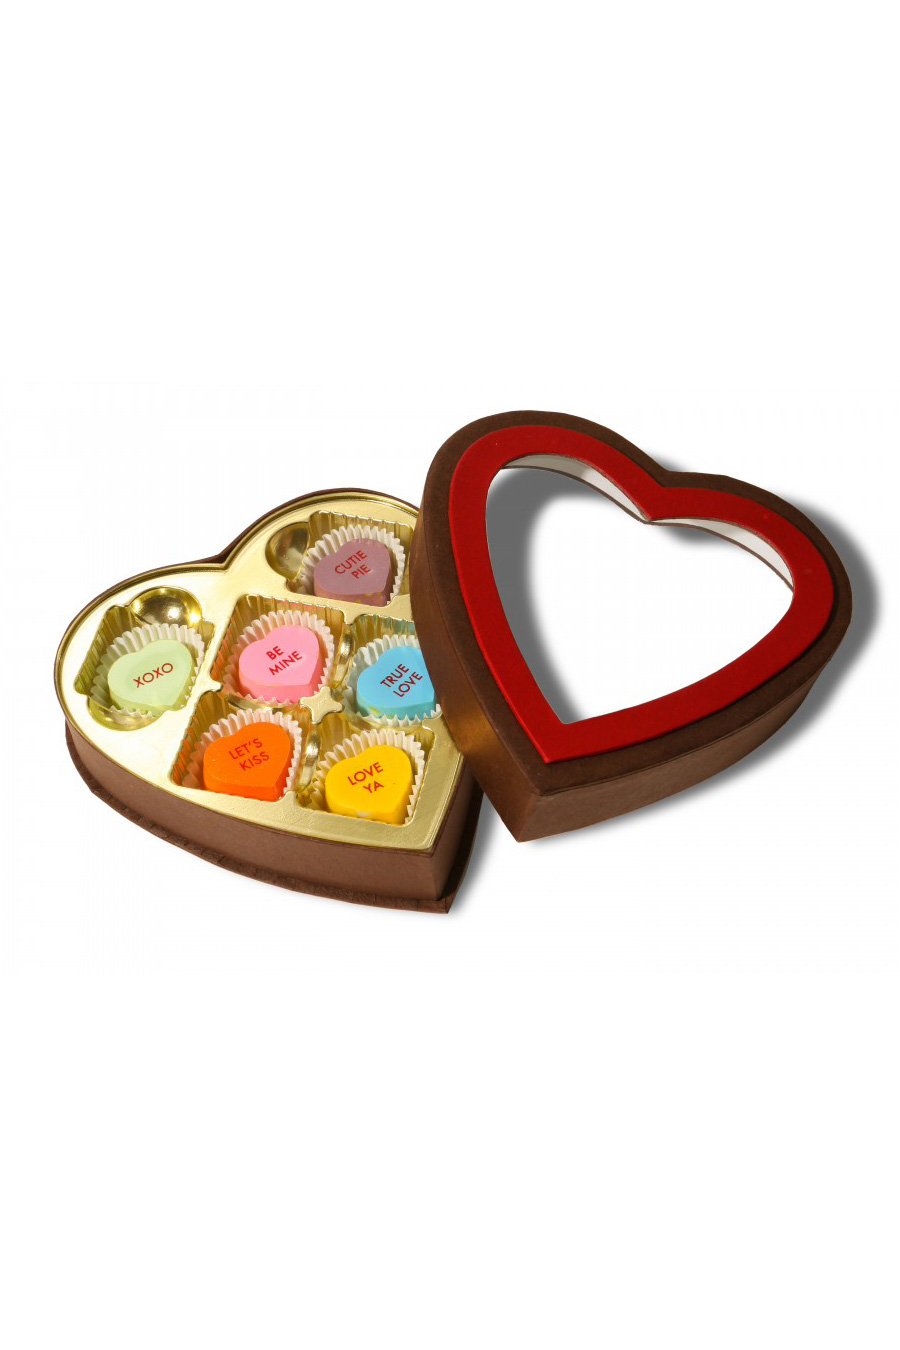 Cacao & Cardamom Valentine's Collection Petite Heart